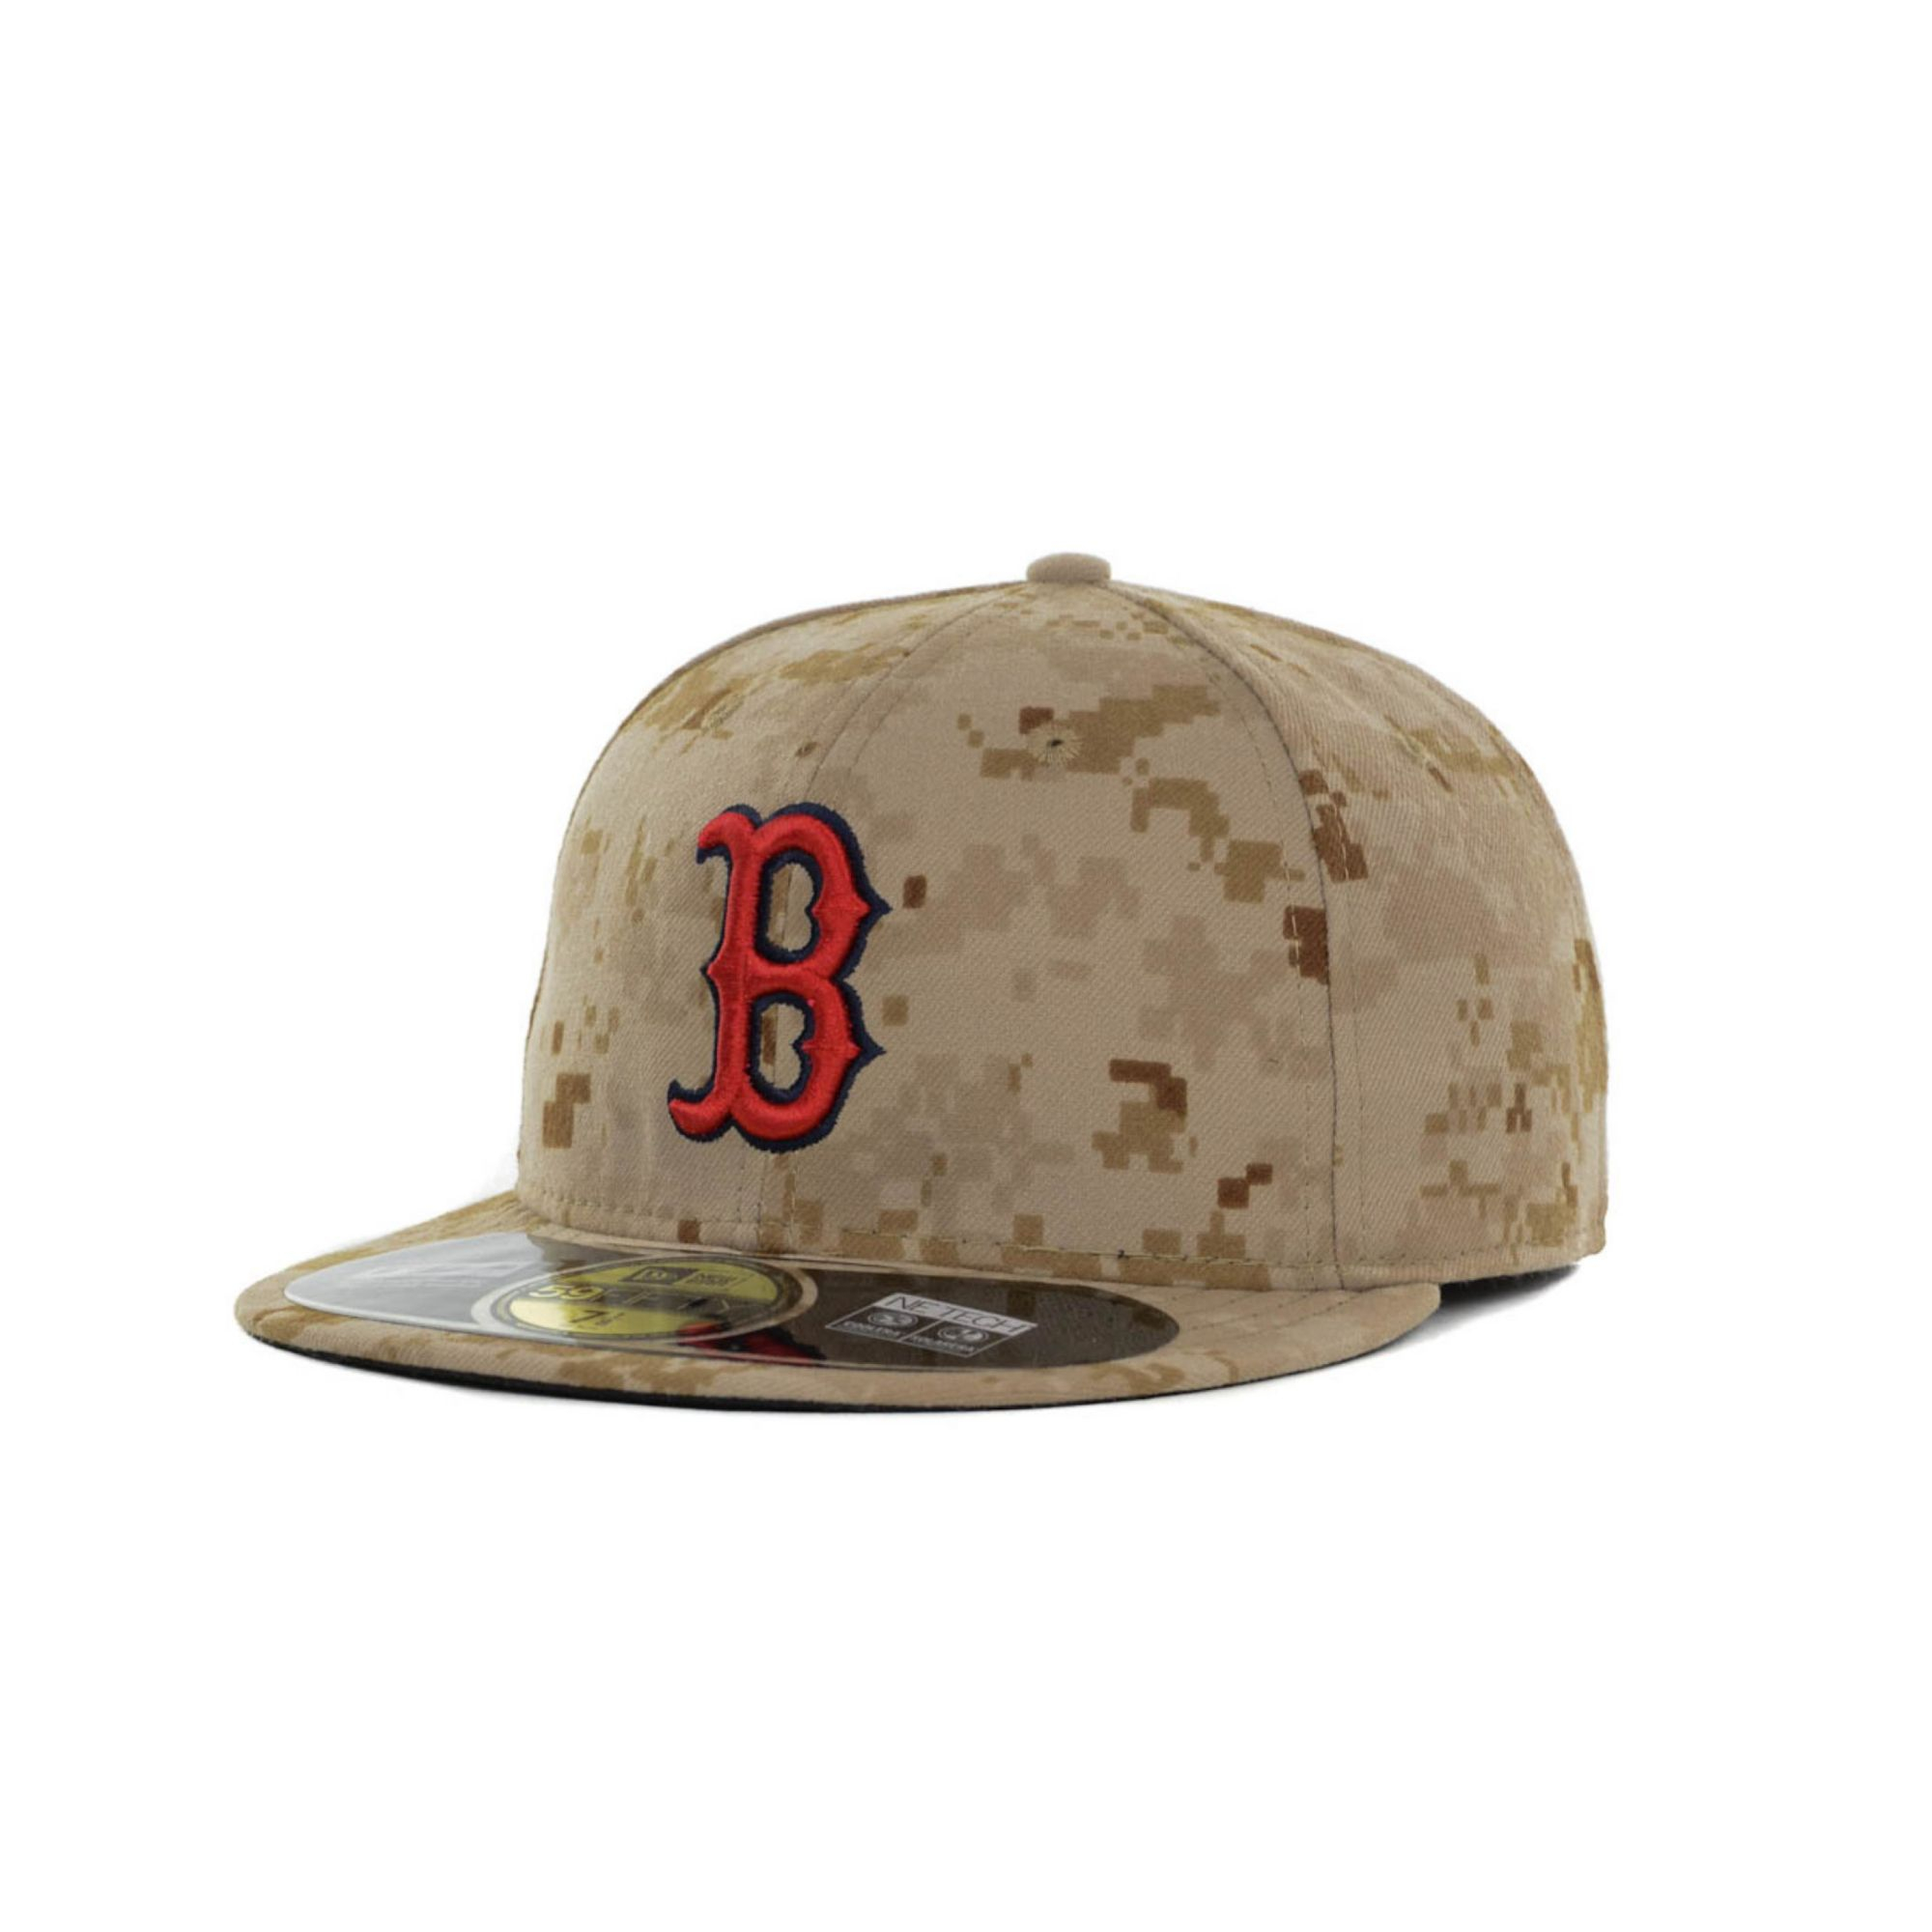 ... discount code for adjustable hat camo washington nationals mlb 2014  memorial day stars and new era fb91ab499d3d